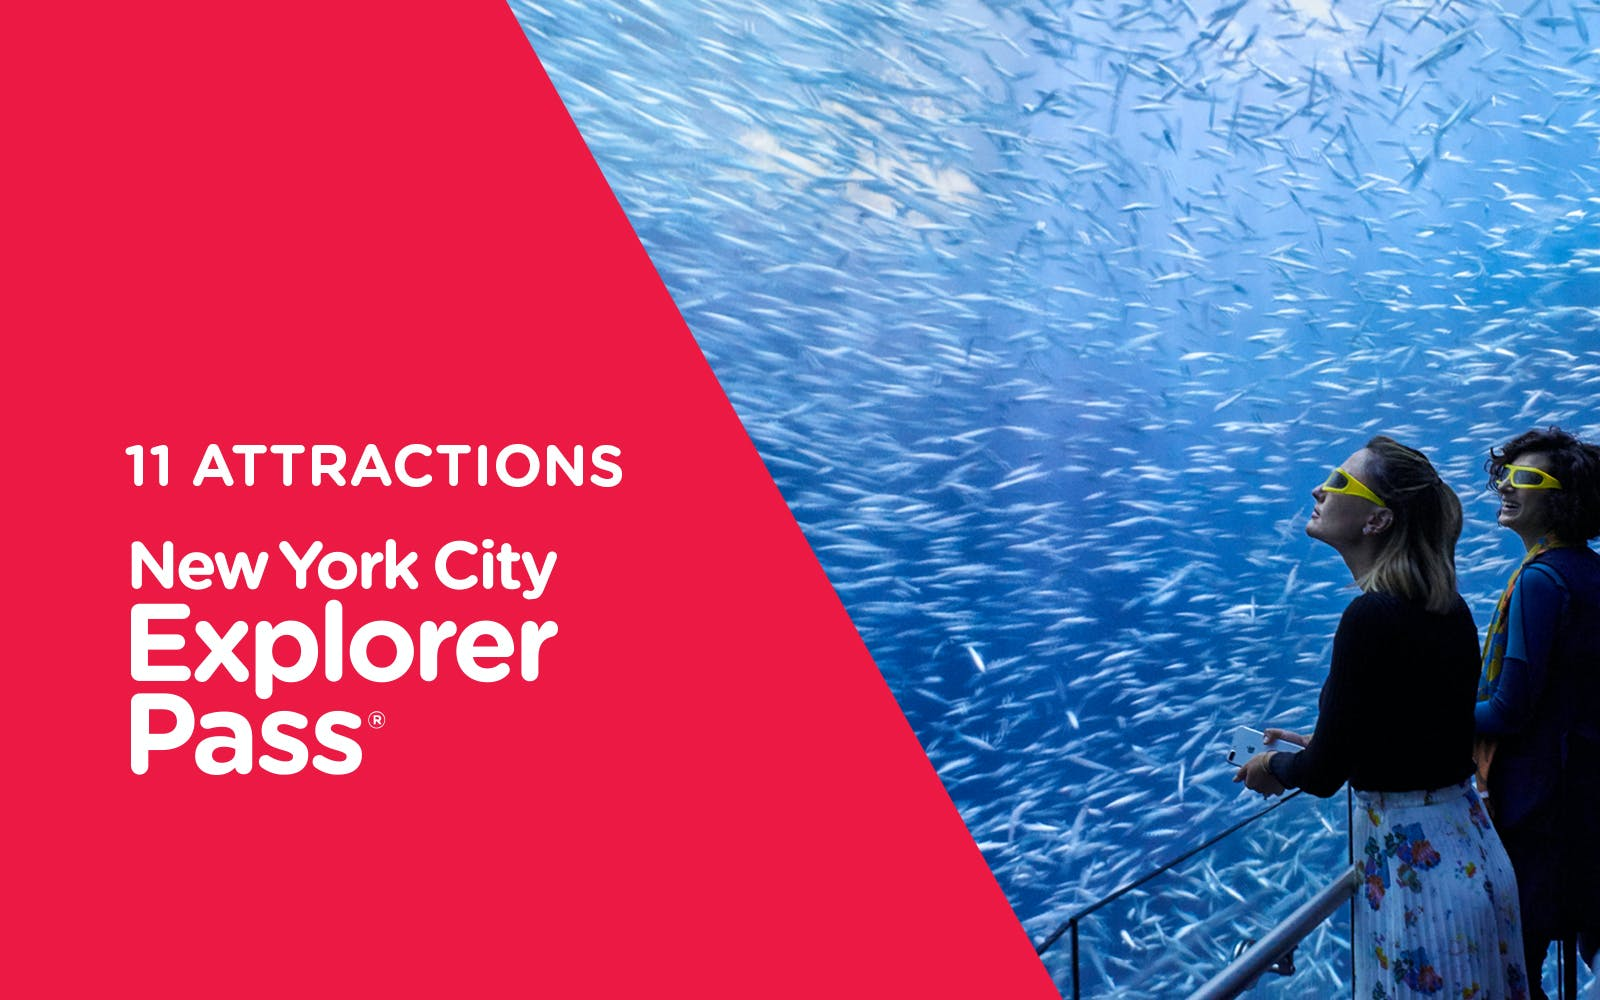 11 attraction new york explorer pass-1